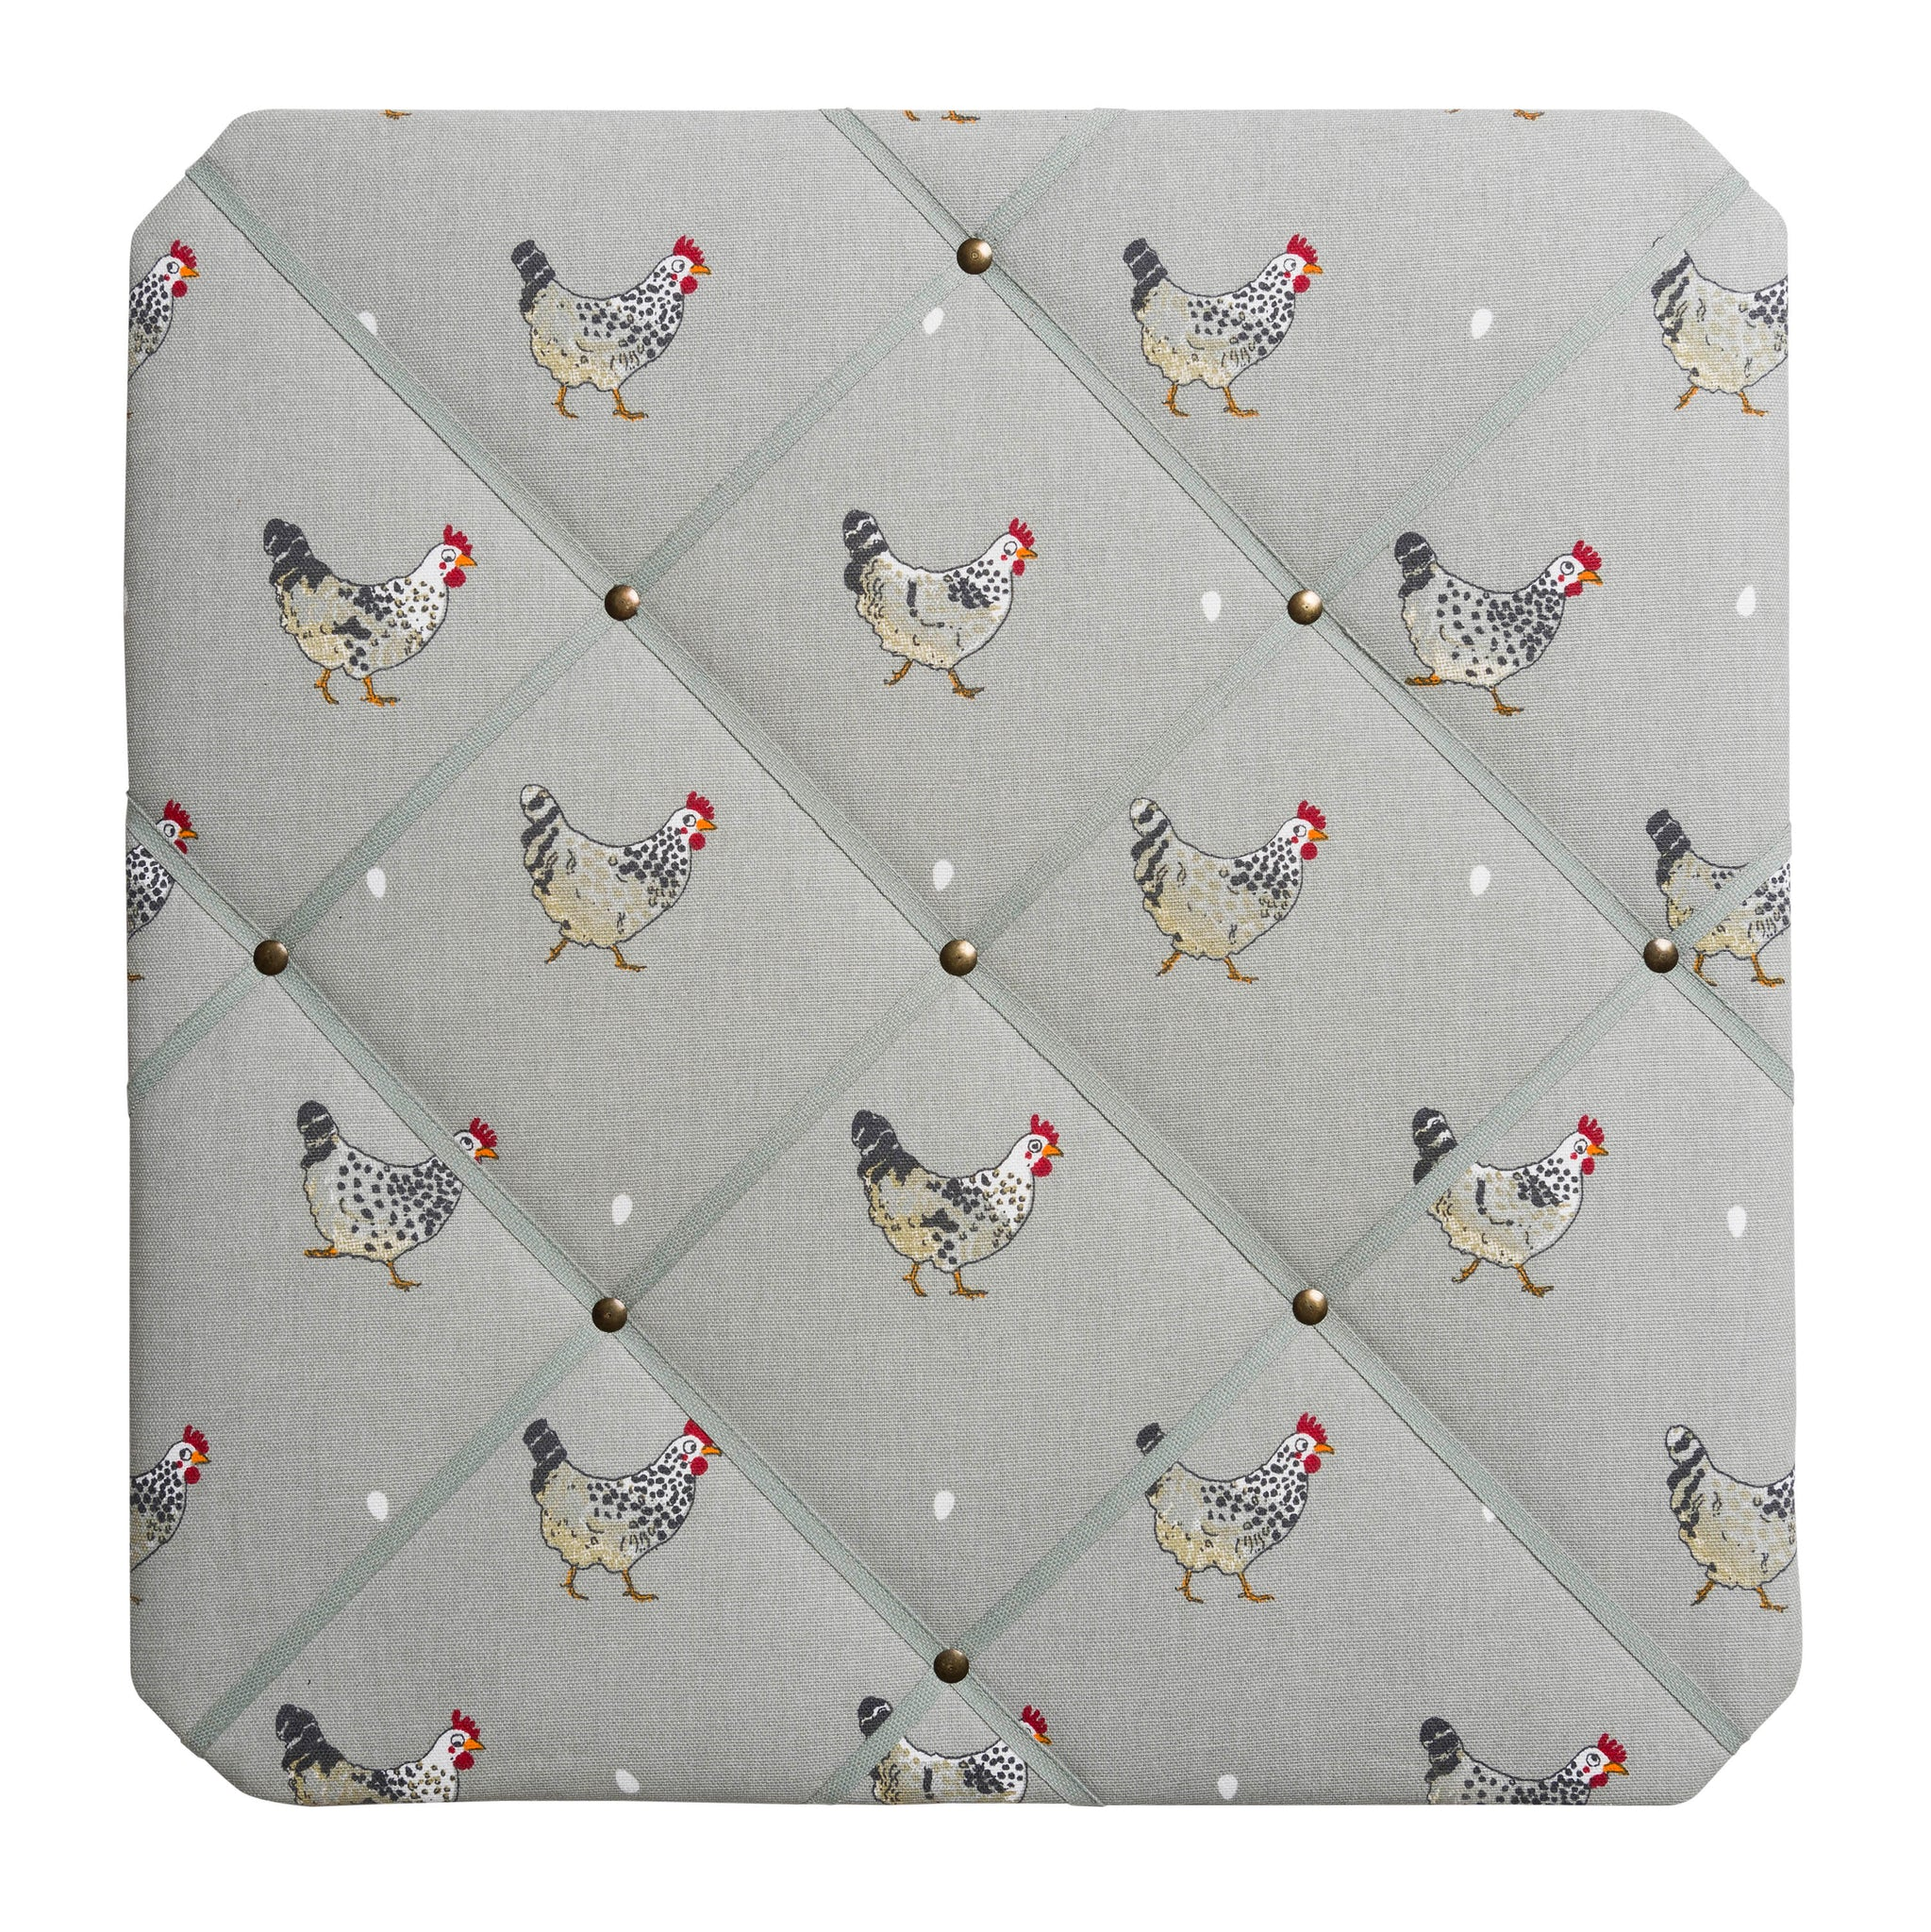 Chicken notice board by Sophie Allport